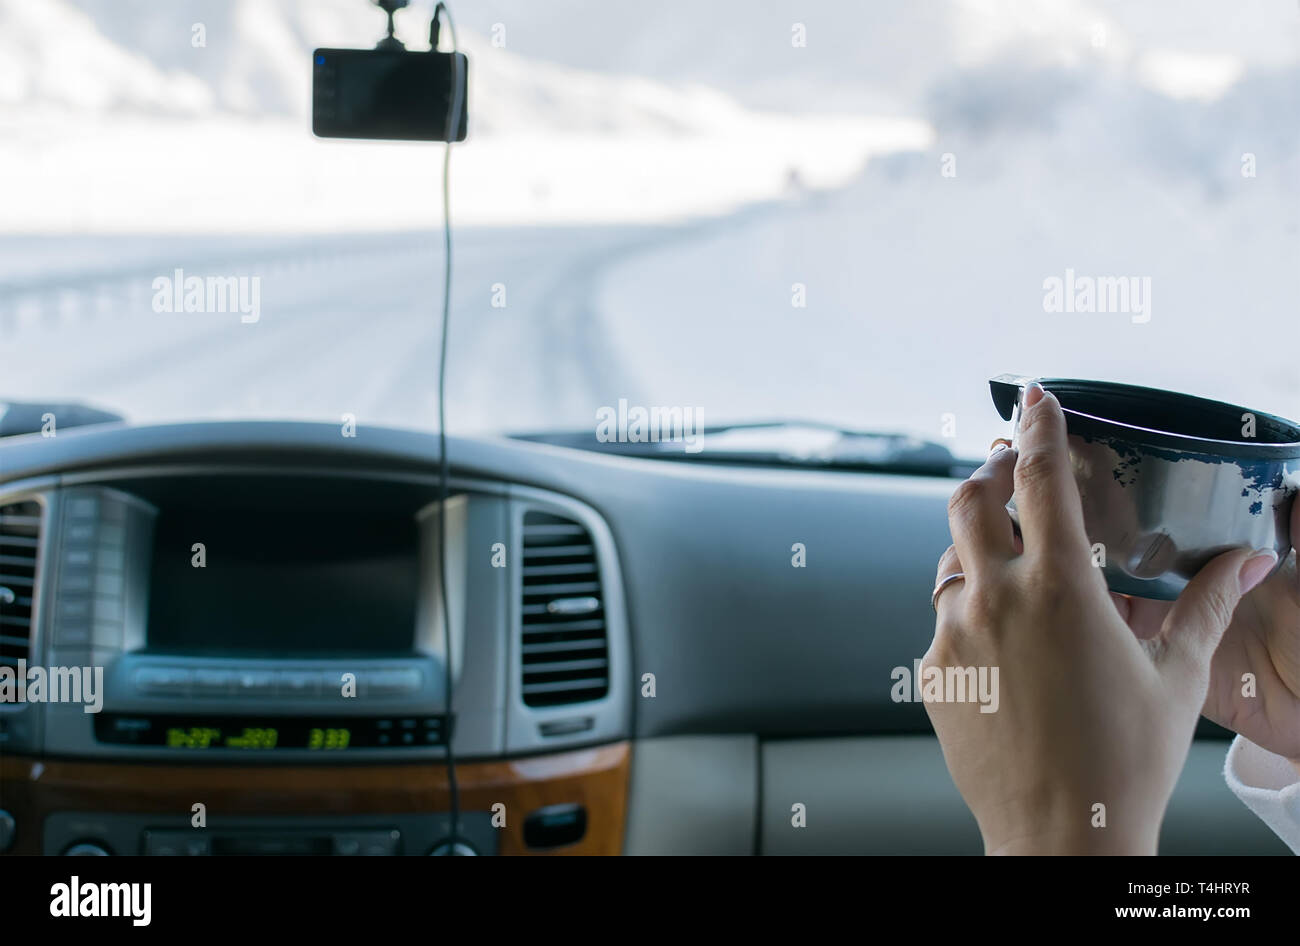 the hand of the girl in the passenger seat of the car holding hot tea from the mug from the thermos, view of the mountain winter road outside the car - Stock Image